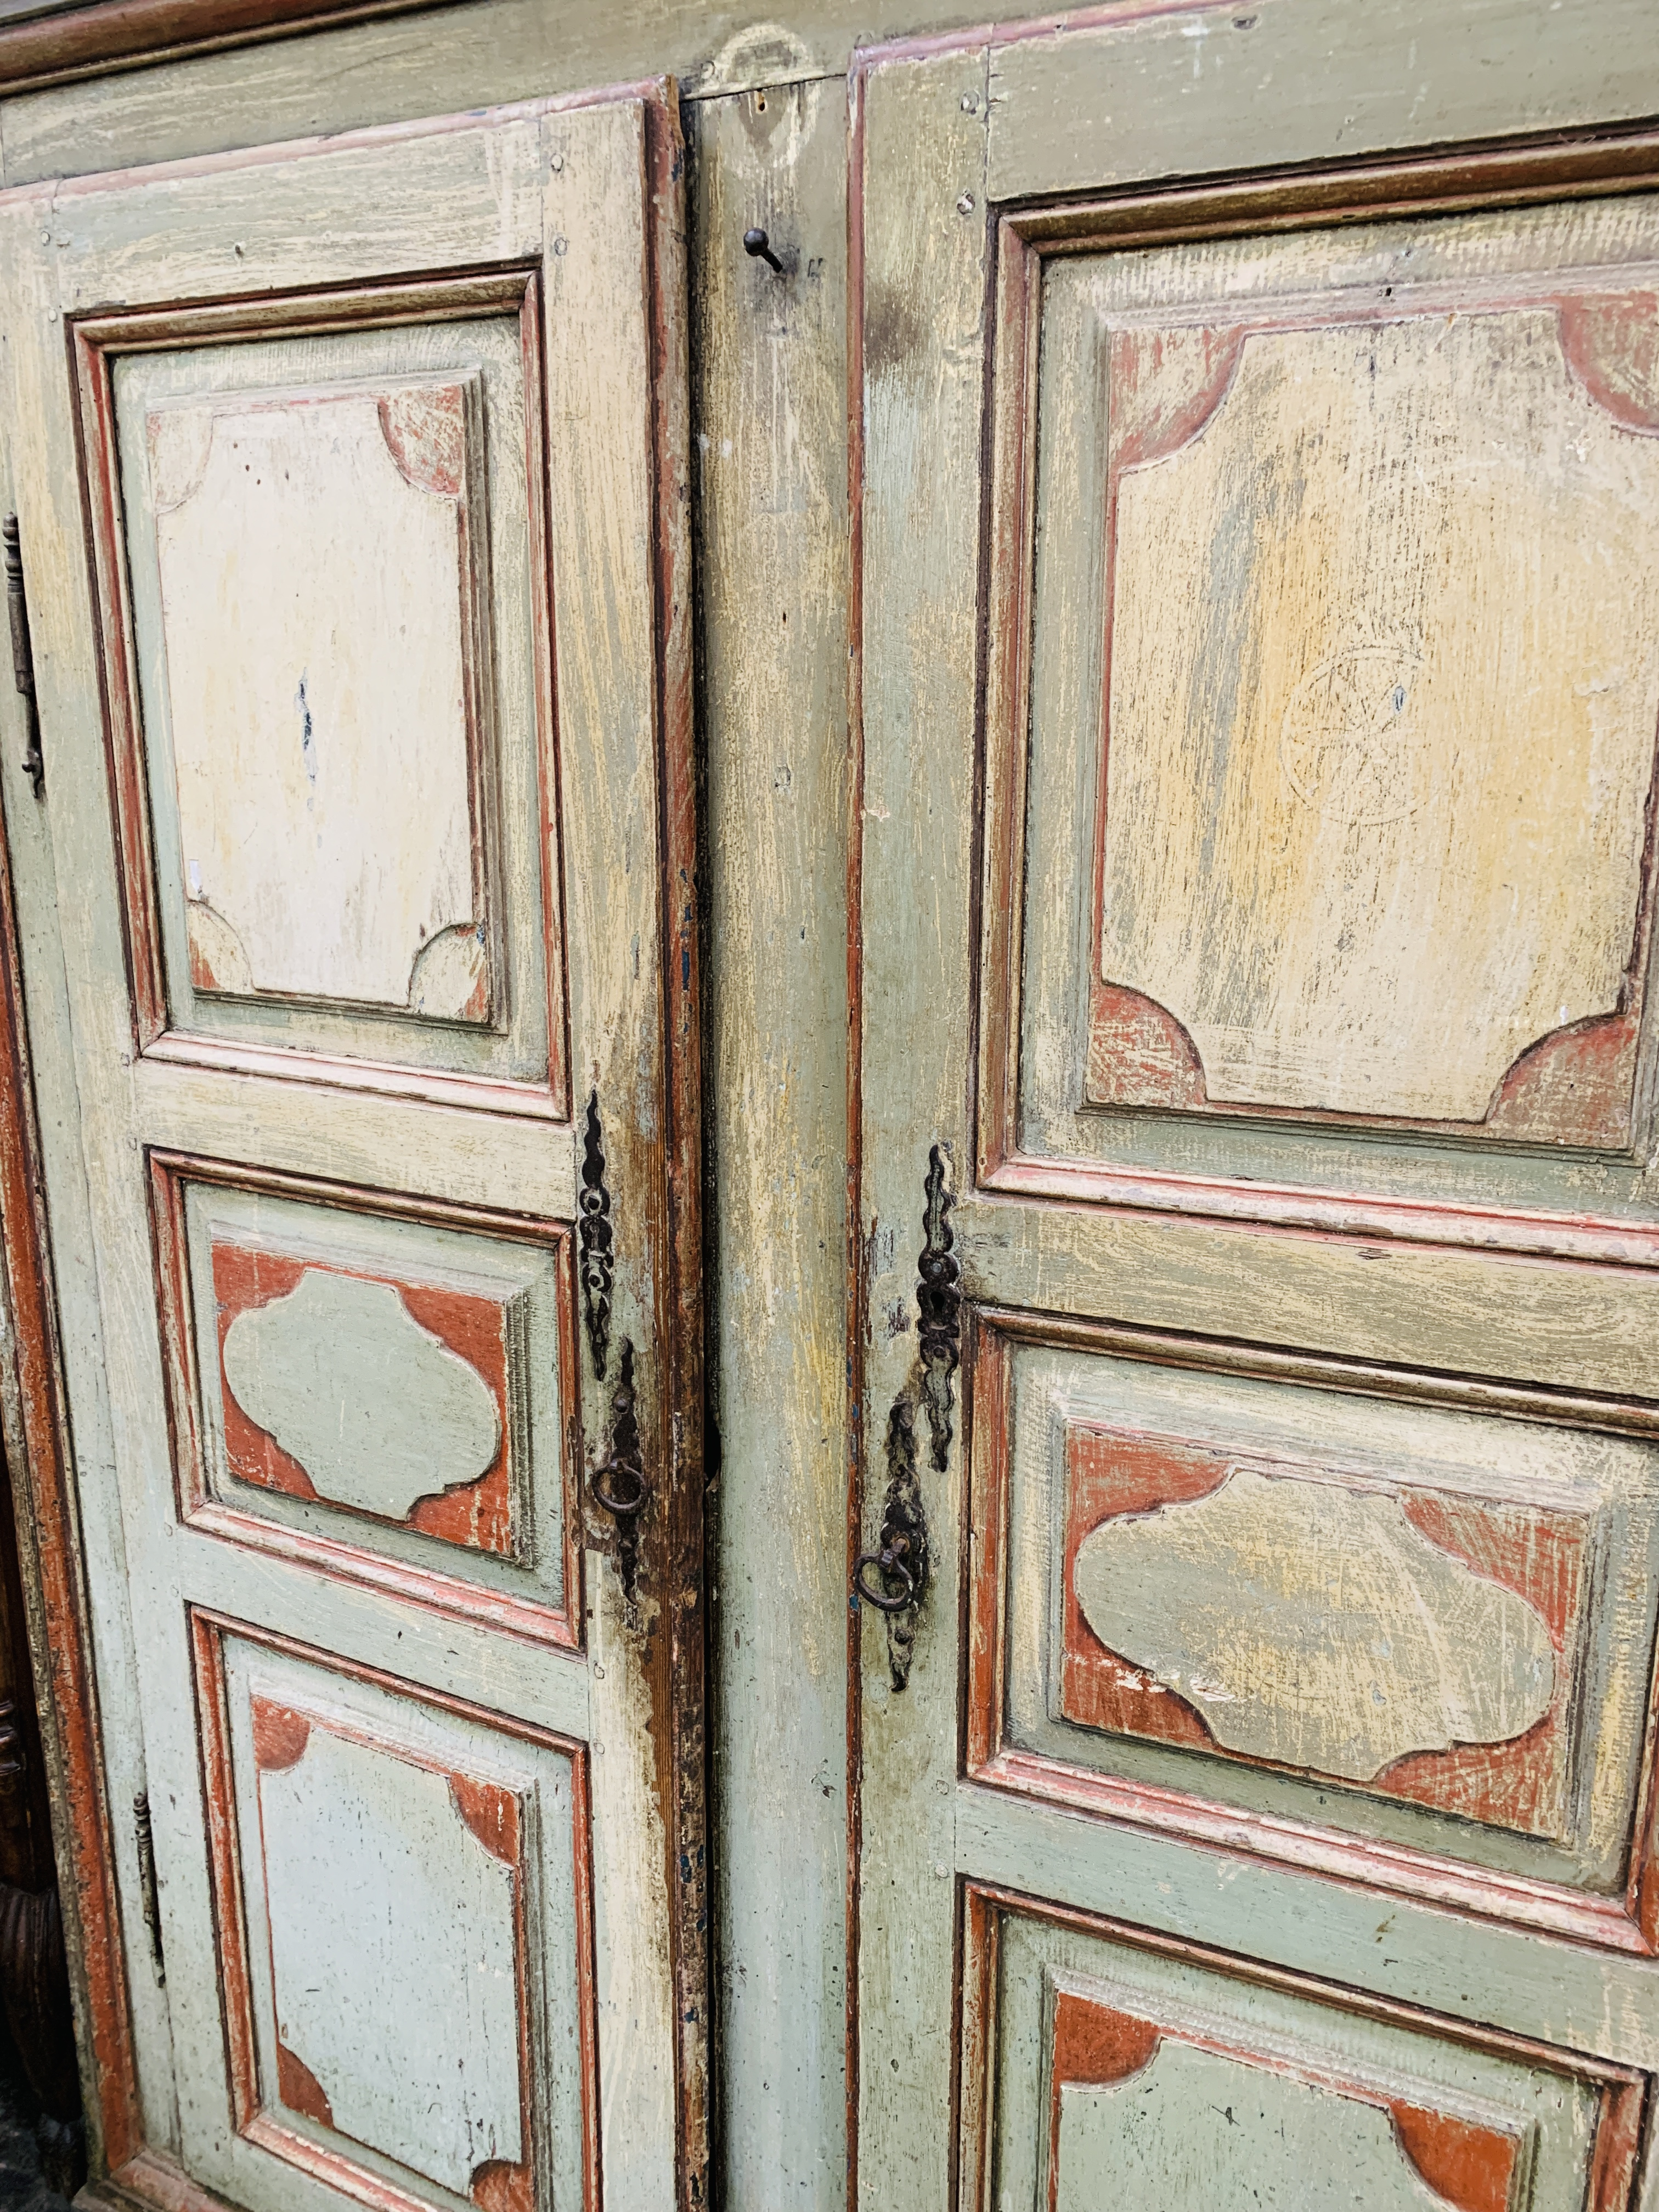 Mid-19th century French painted pine wardrobe - Image 8 of 8